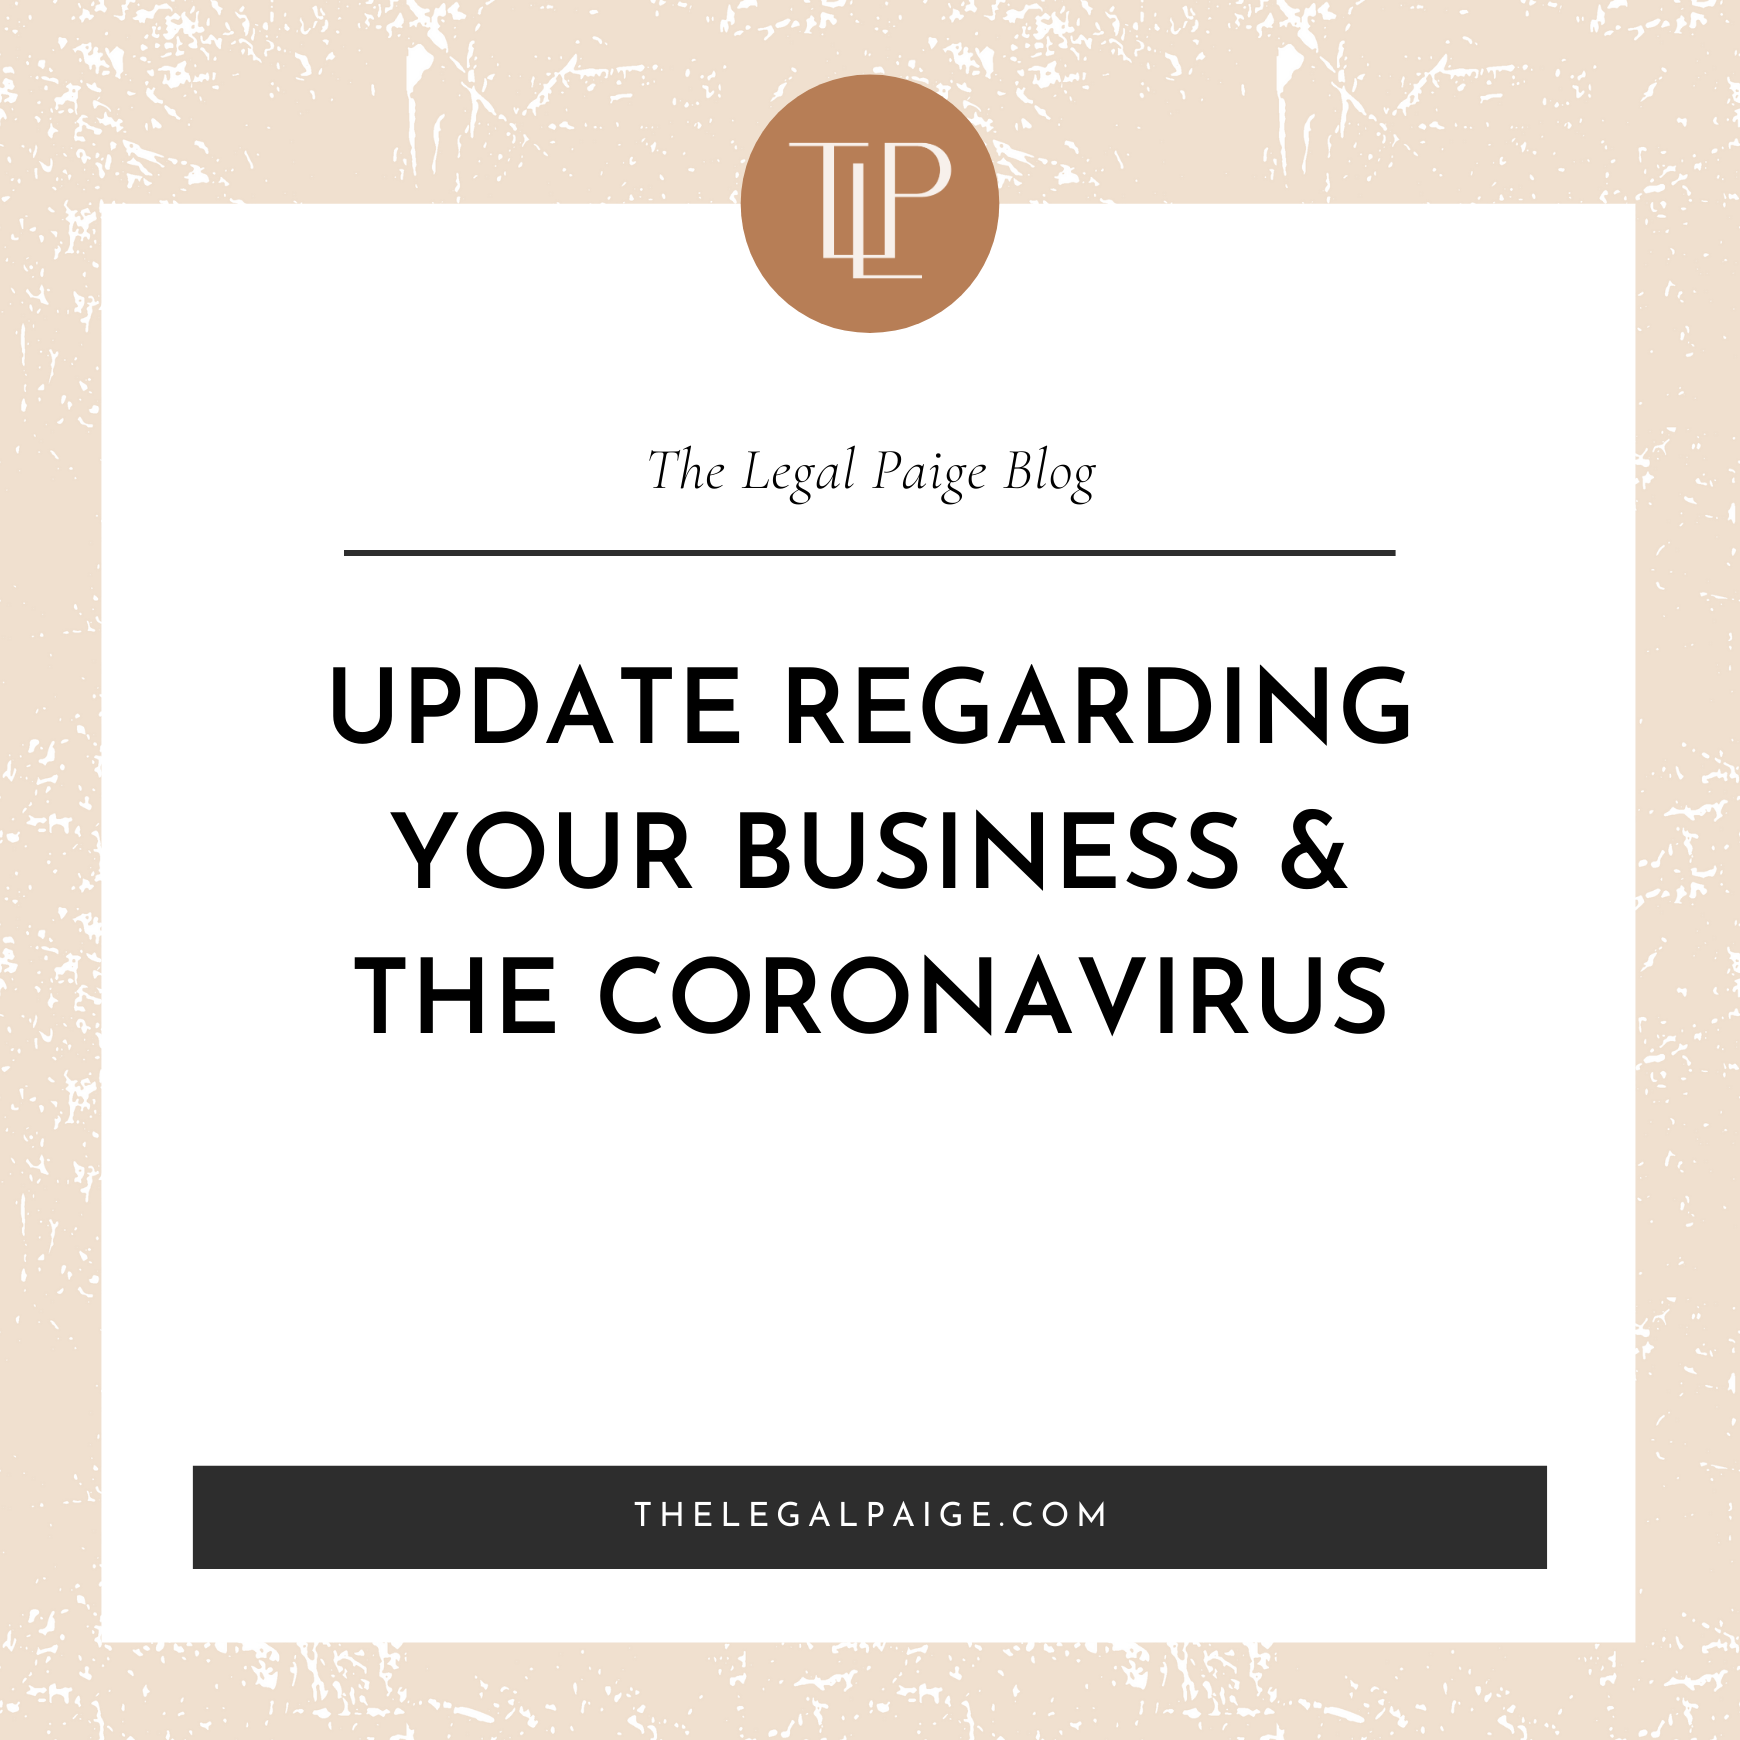 Update Regarding Your Business & The Coronavirus